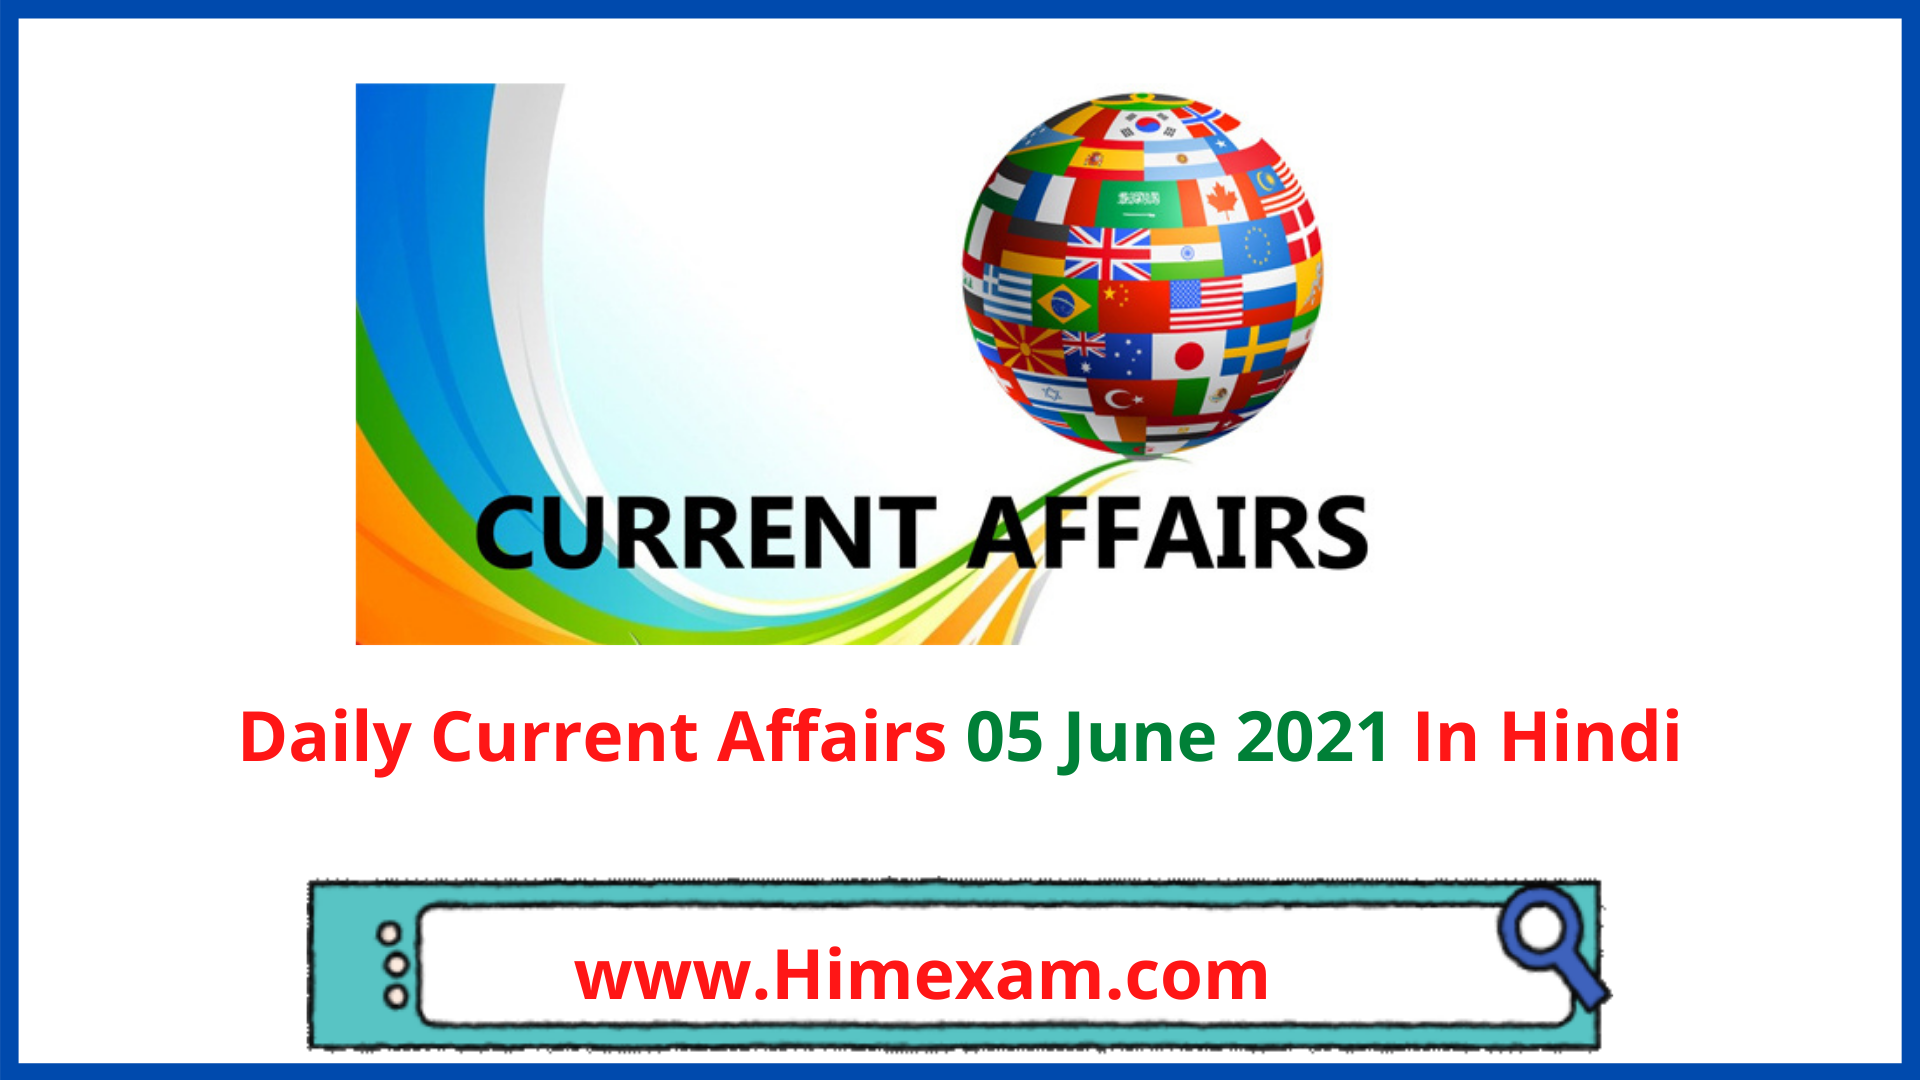 Daily Current Affairs 05 June 2021 In Hindi